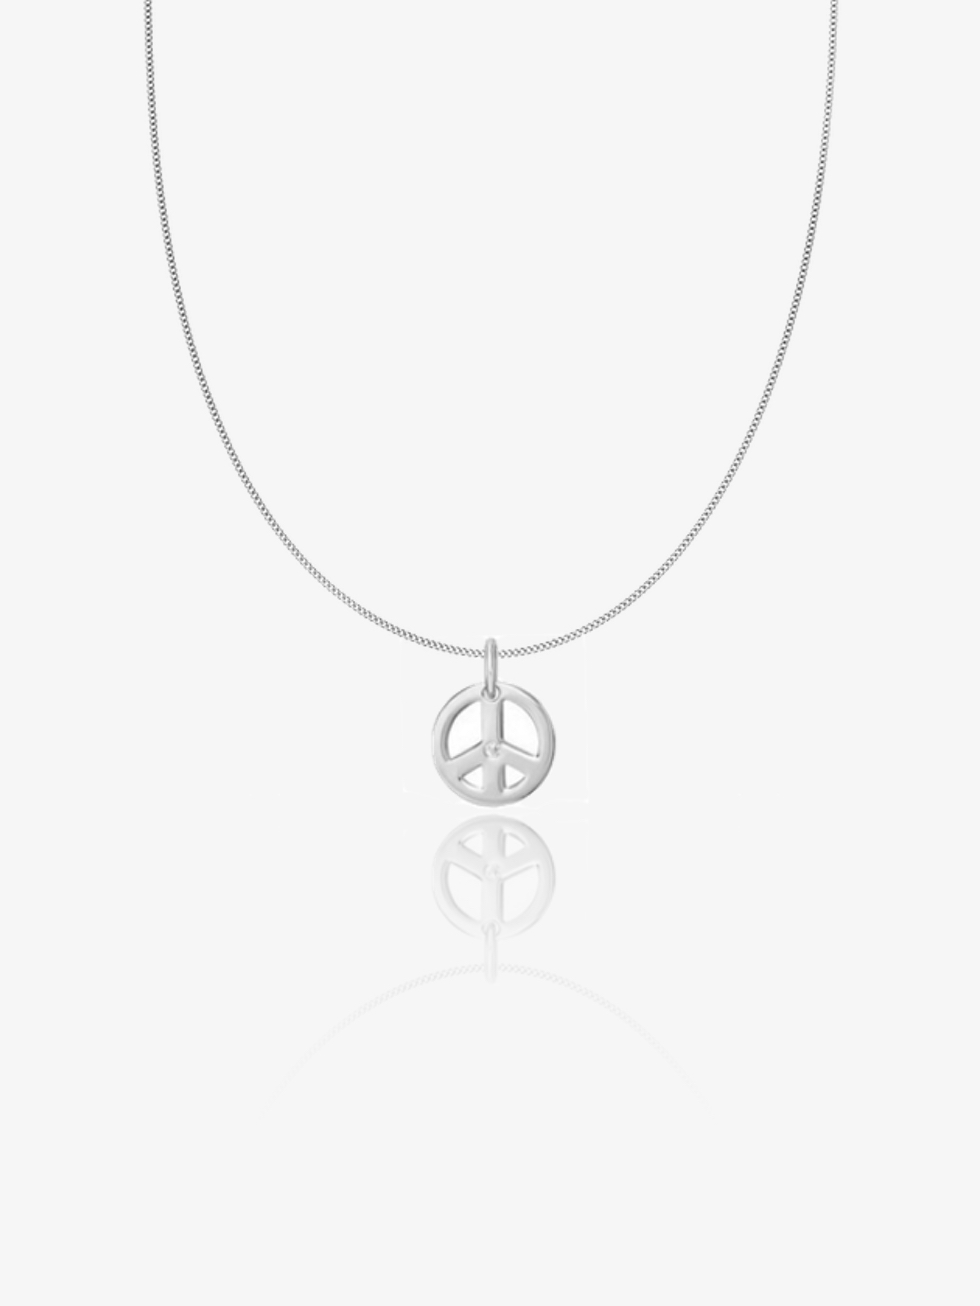 PEACE silver necklace CZ